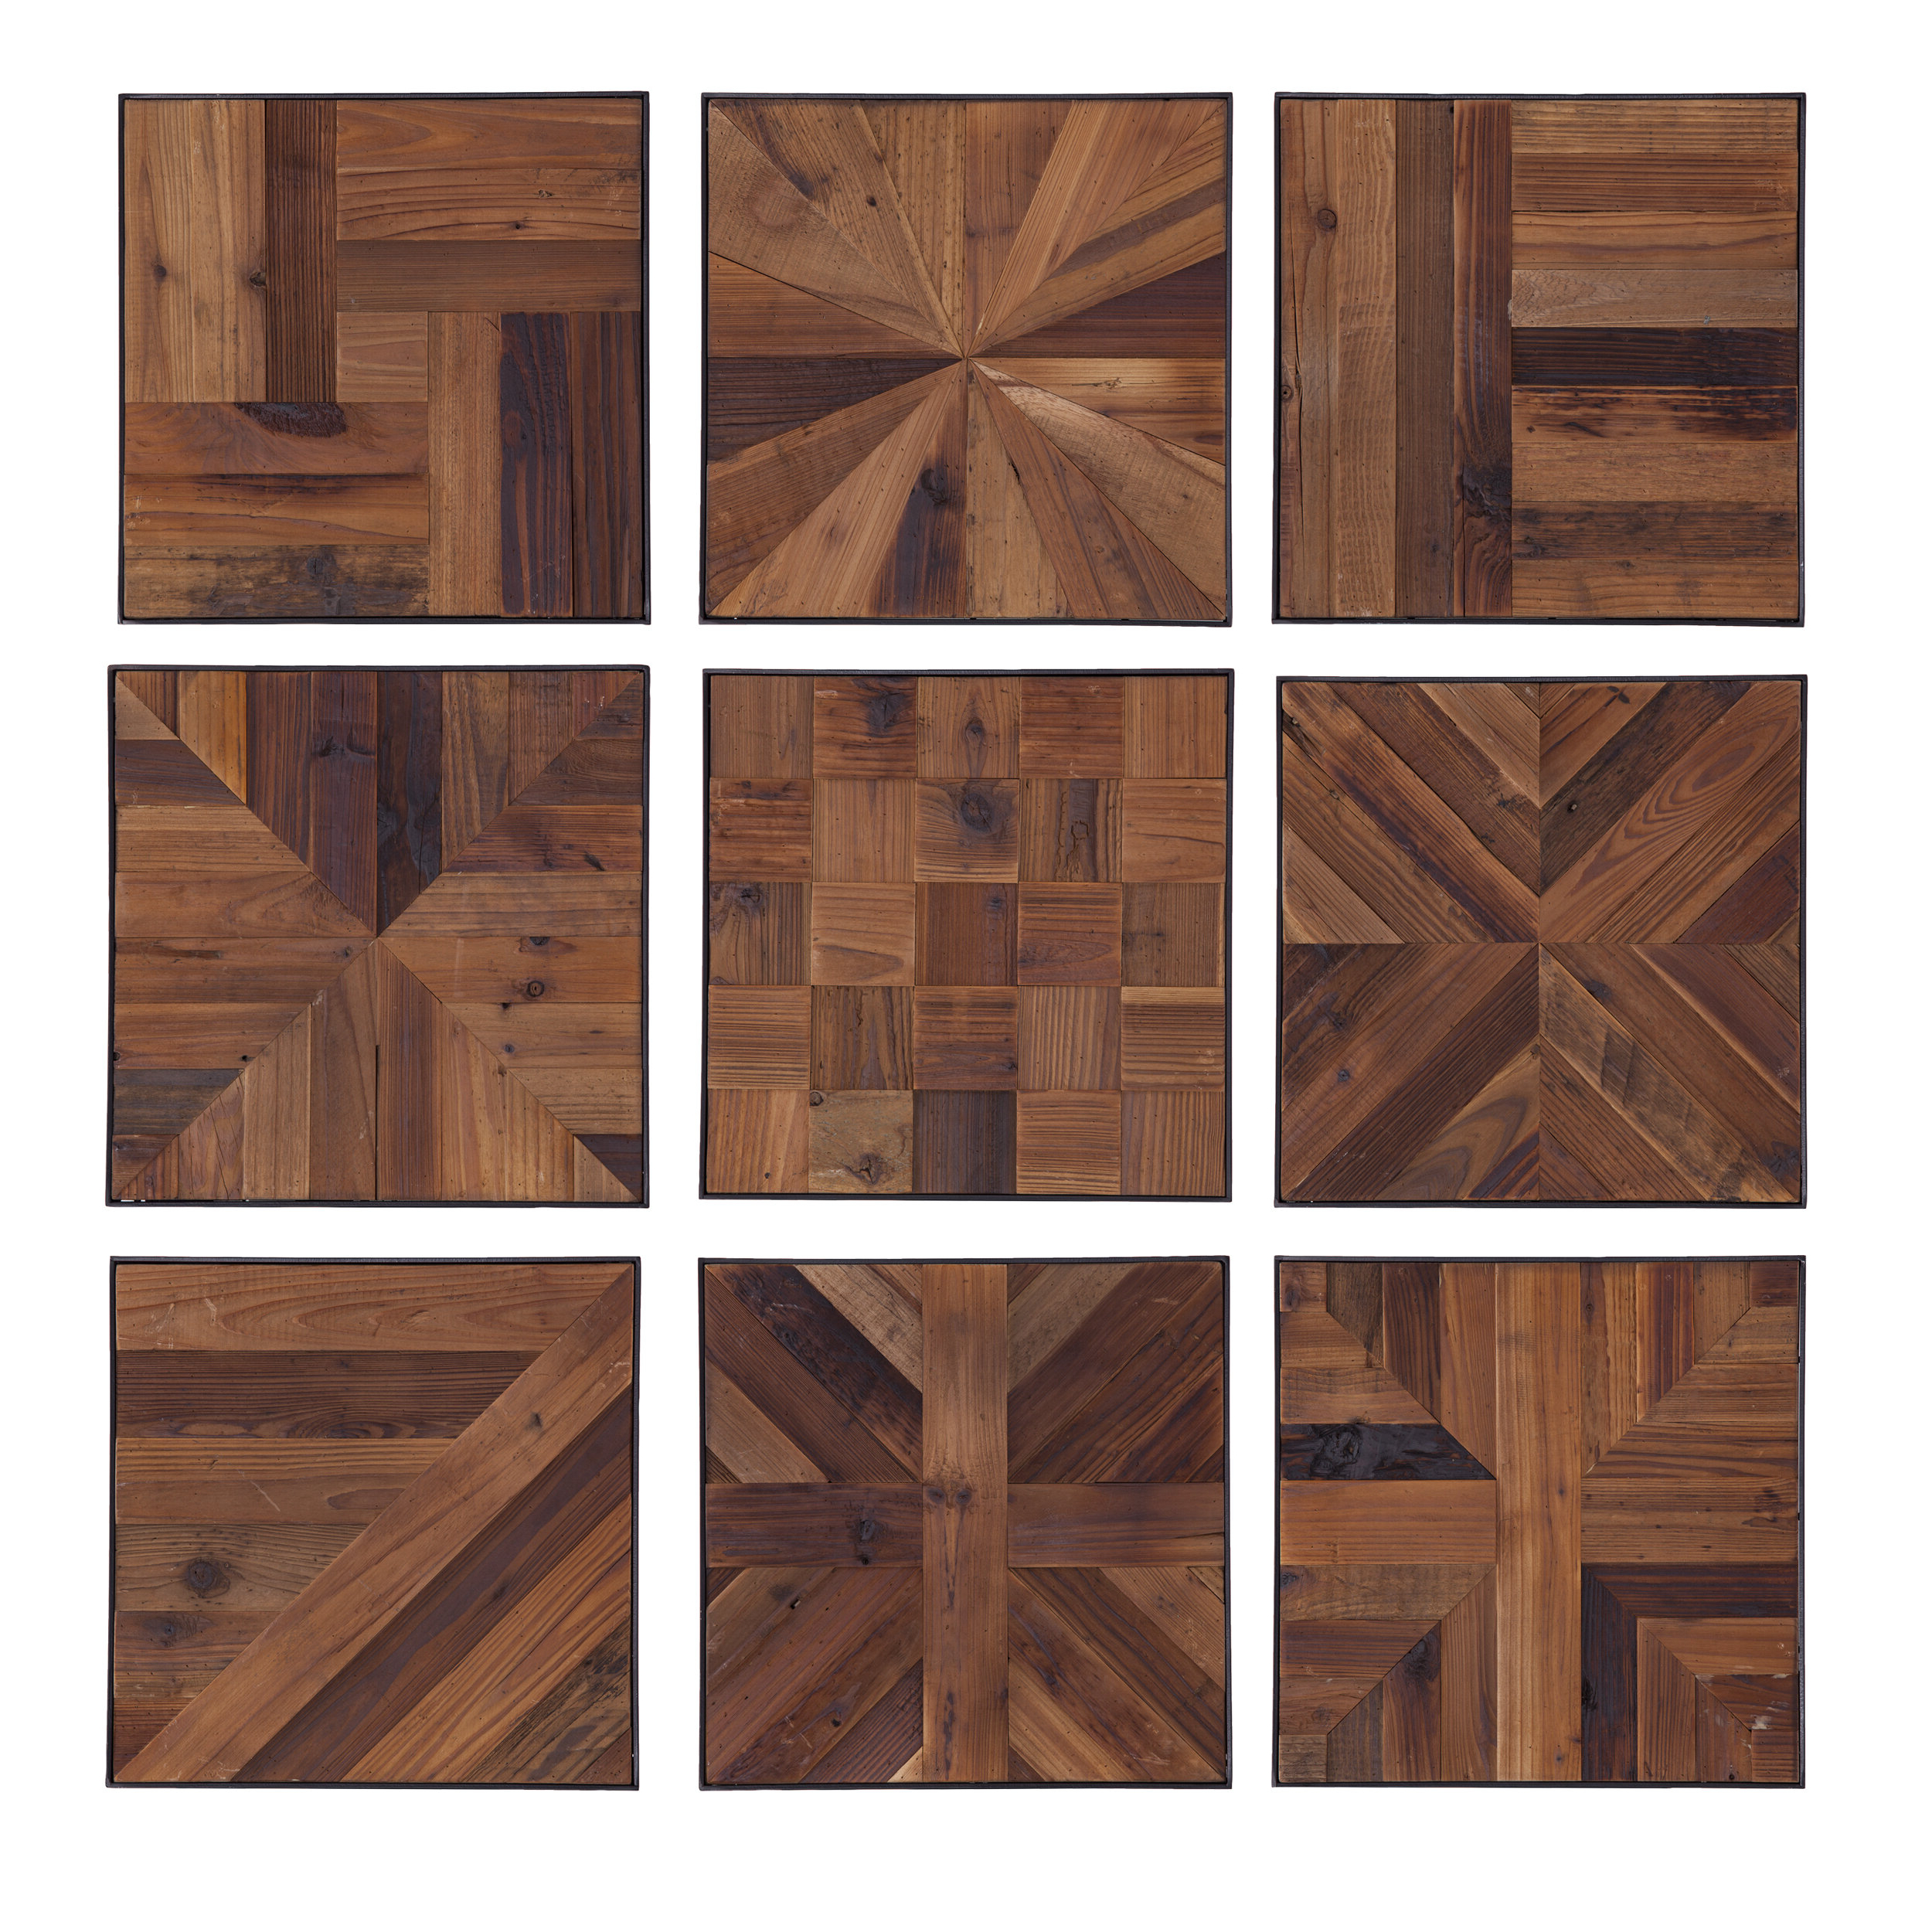 1 Piece Ortie Panel Wall Decor With Regard To 2019 9 Piece Reclaimed Wood Wall Décor Set (View 5 of 20)